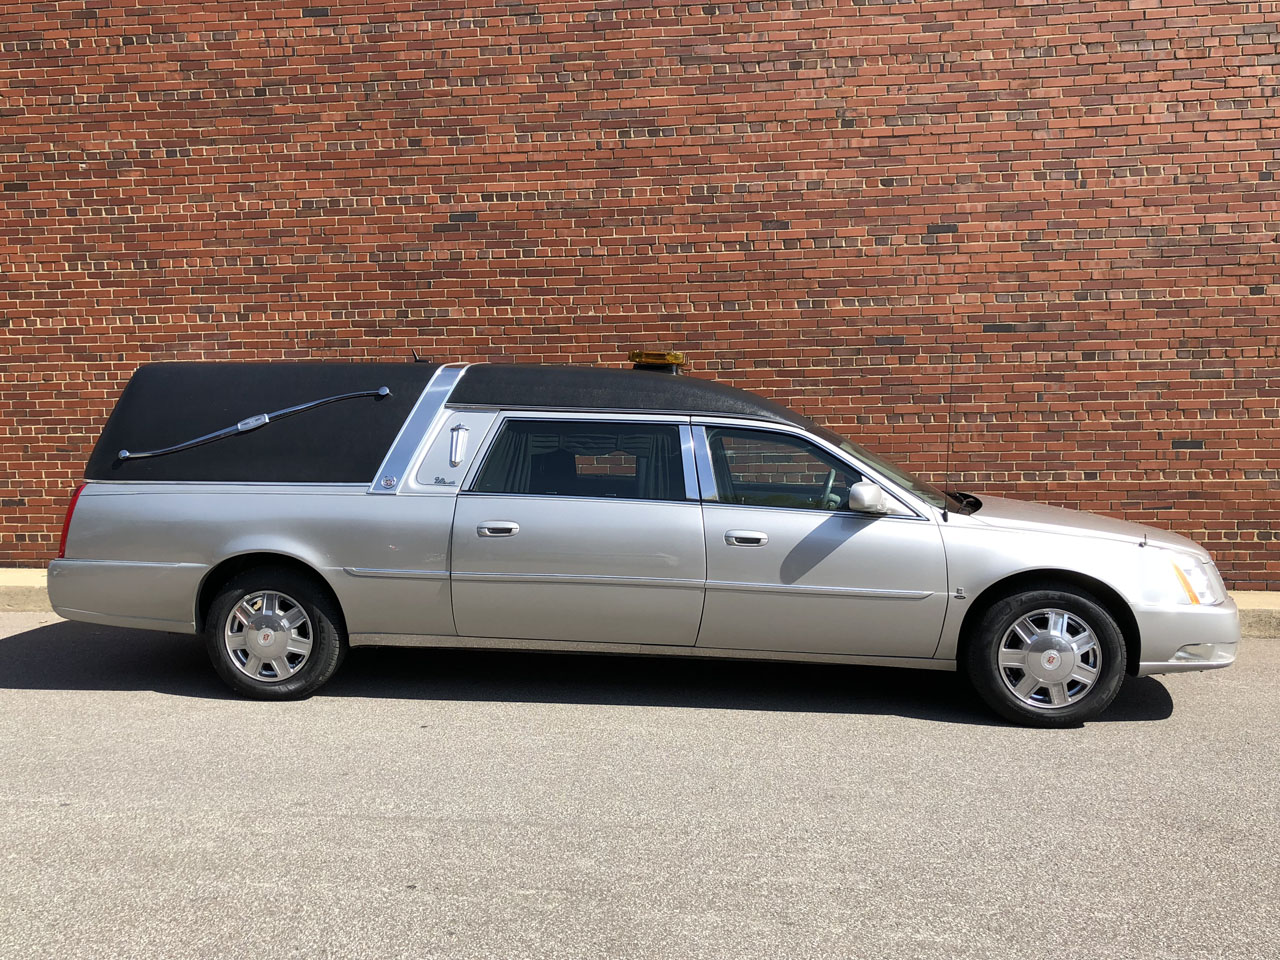 2008 Cadillac Eagle Ultimate Hearse